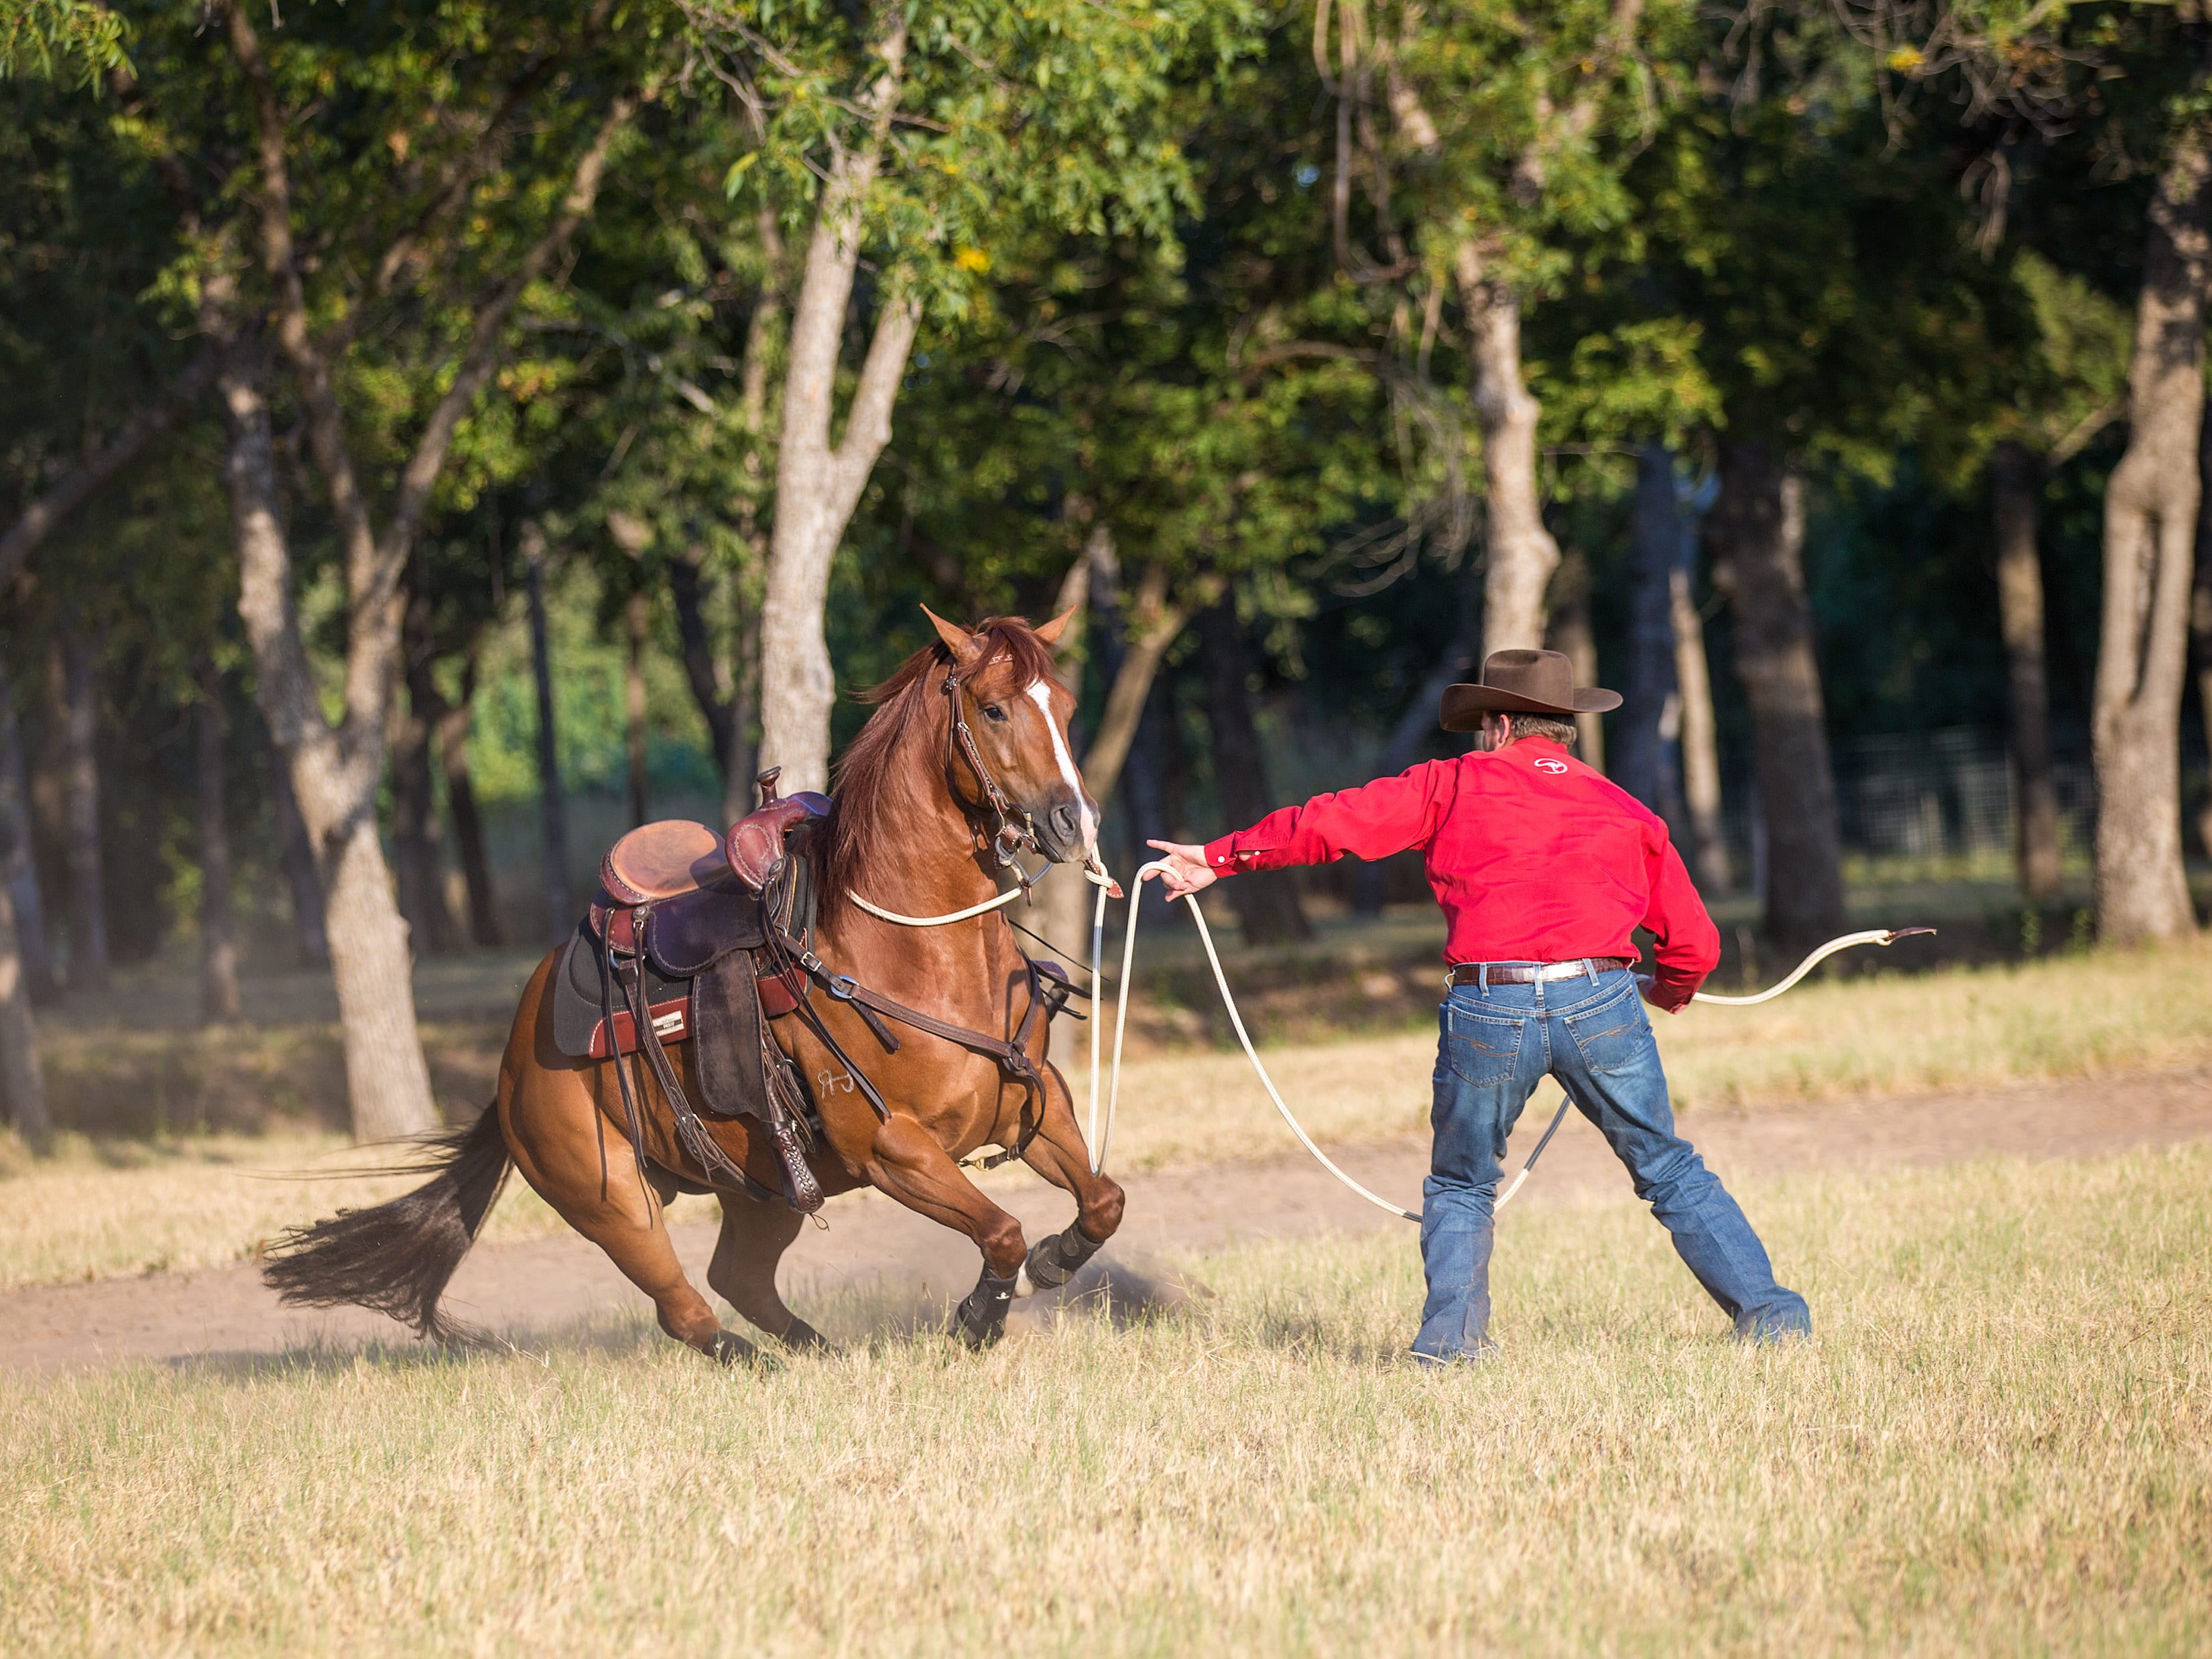 , Clinton Anderson Tip – 3 Ways to Overcome Your Horse's Rearing, Vetericyn Animal Wellness, Vetericyn Animal Wellness